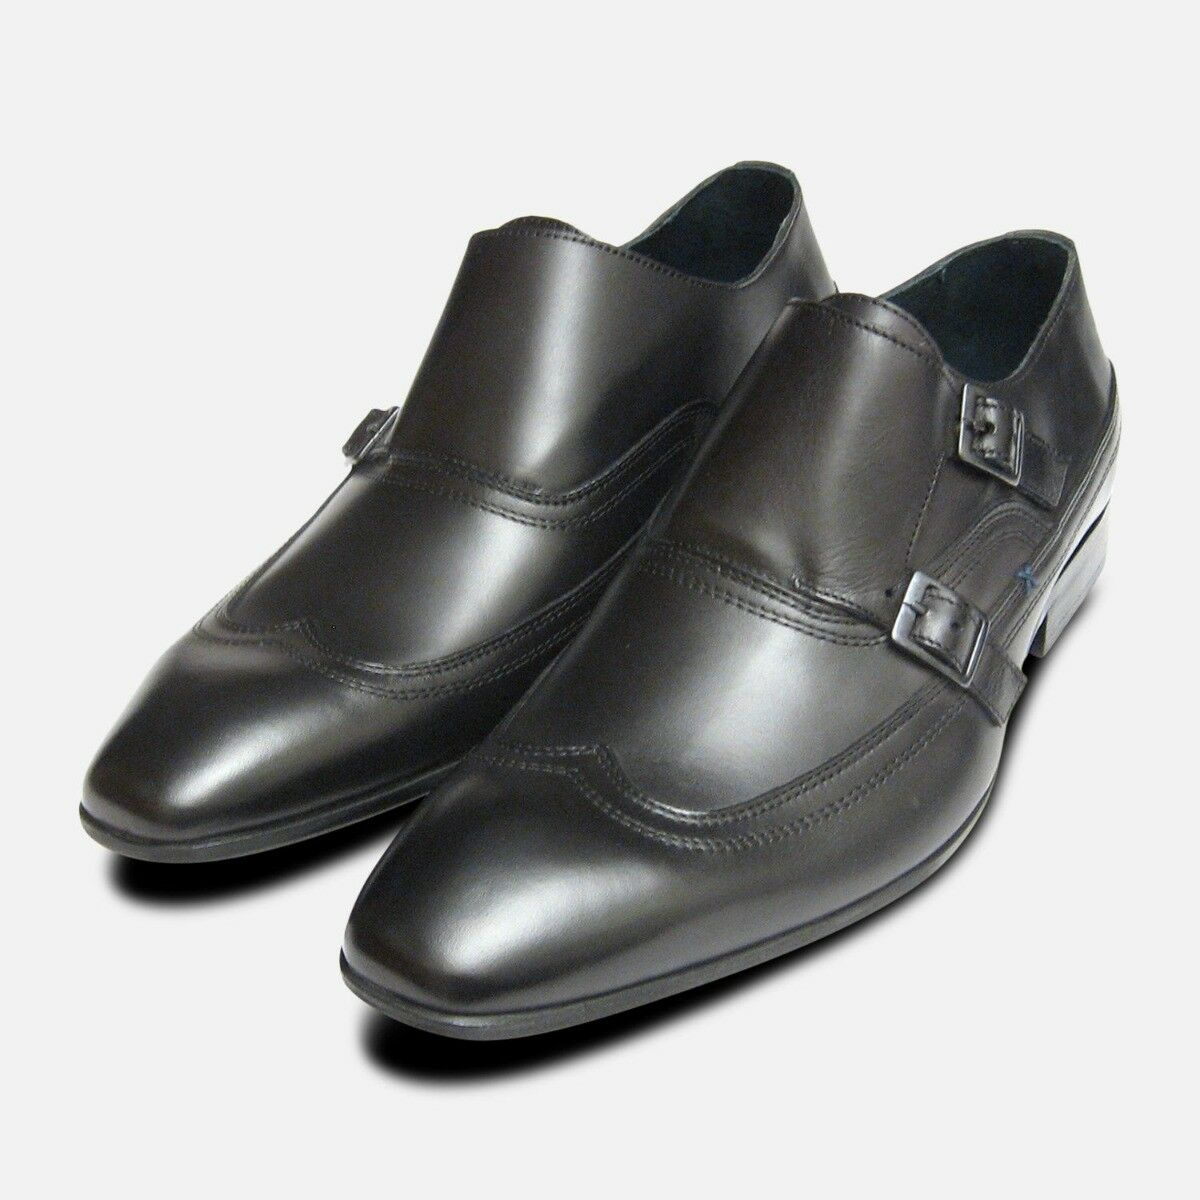 Designer Black Double Buckle Monk Shoes by Exceed